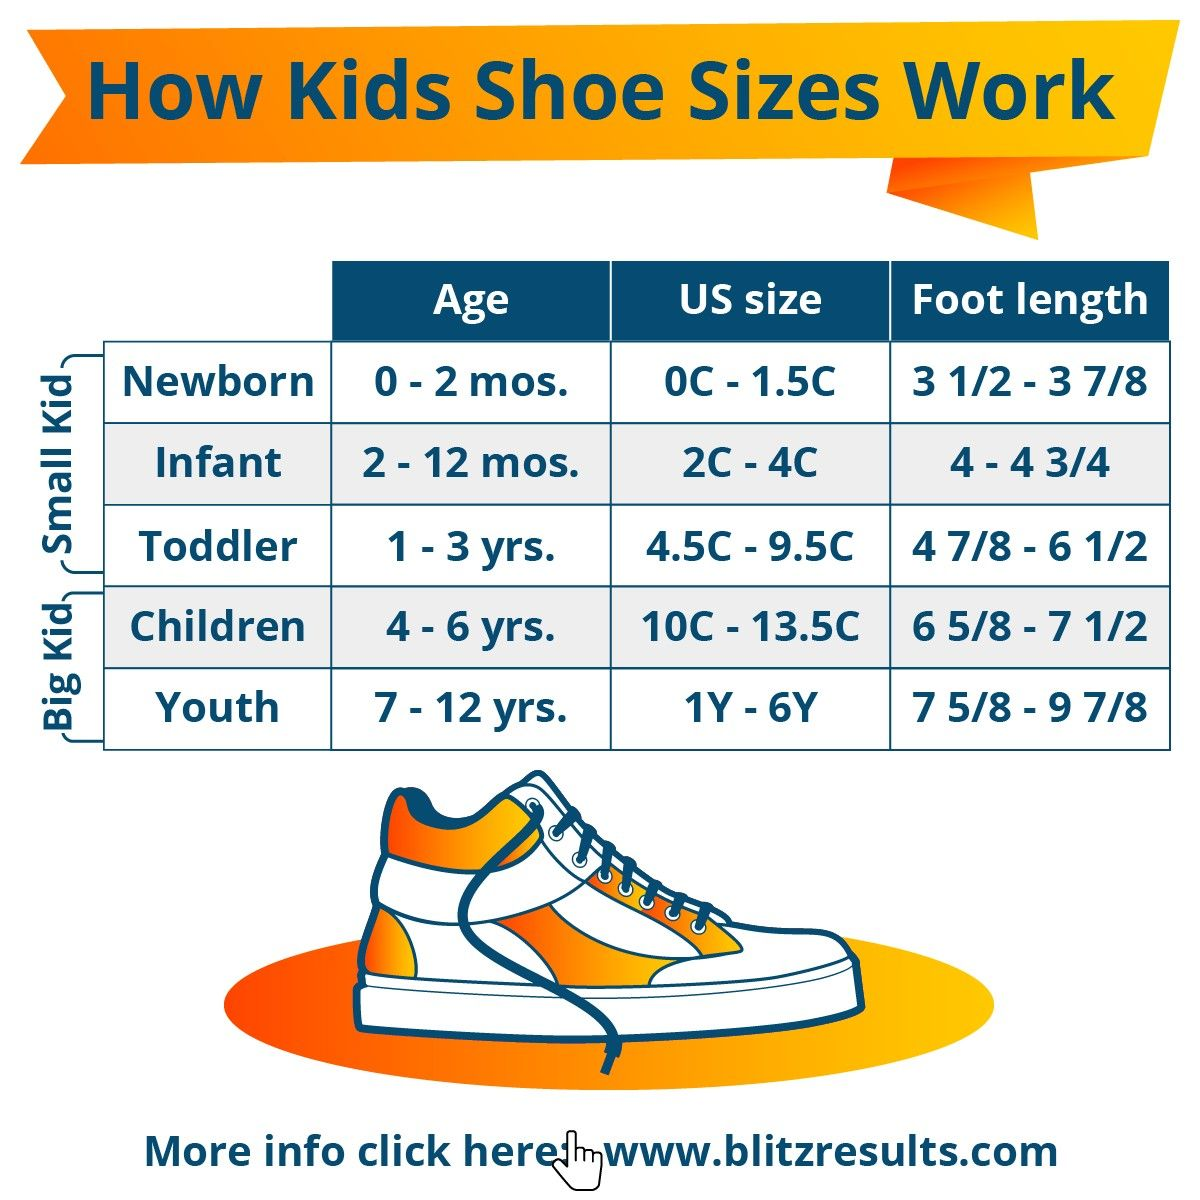 Pin by Karen Twitch on Kids | Baby shoe sizes, Crib shoes ...